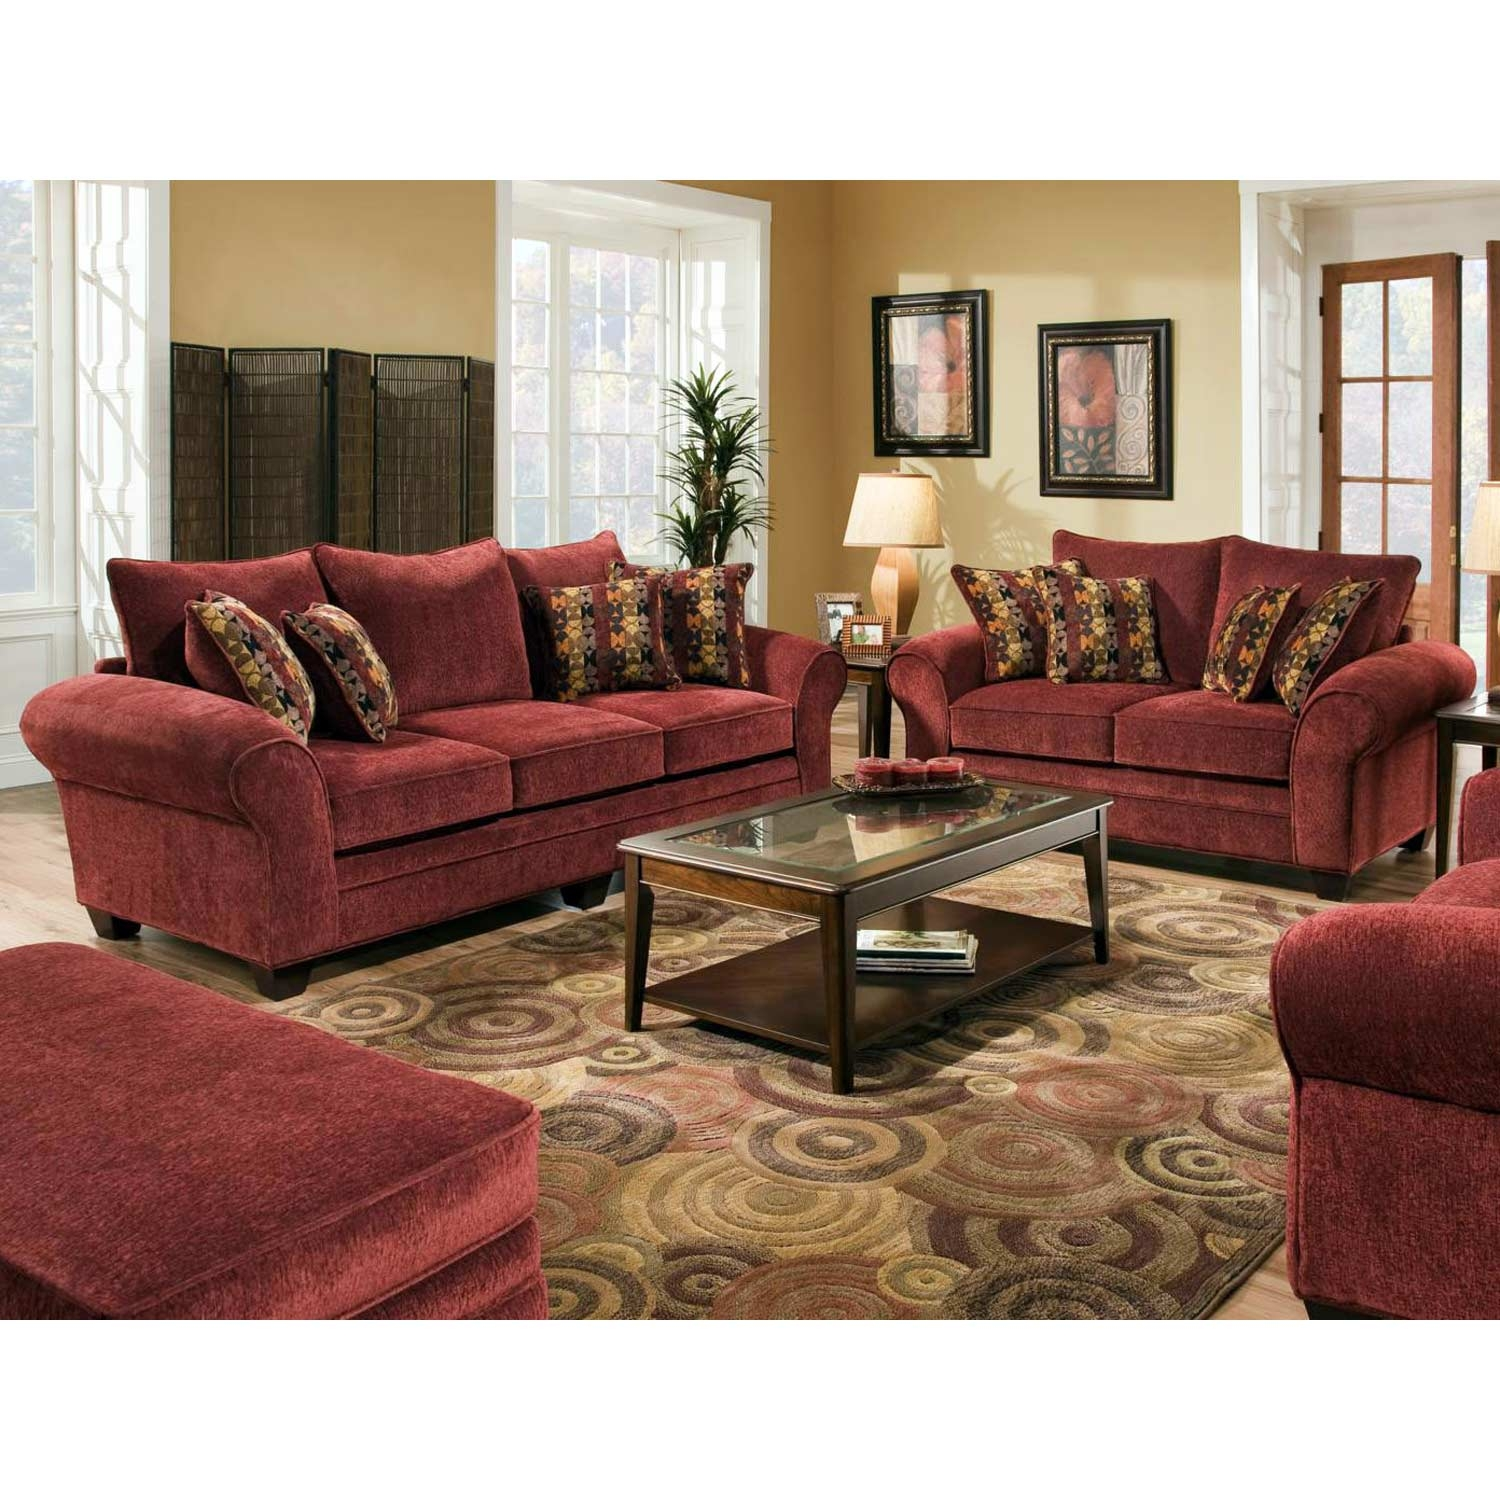 chenille living room furniture foter rh foter com Chenille Couch Red Chenille Sofa Corinthian Furniture